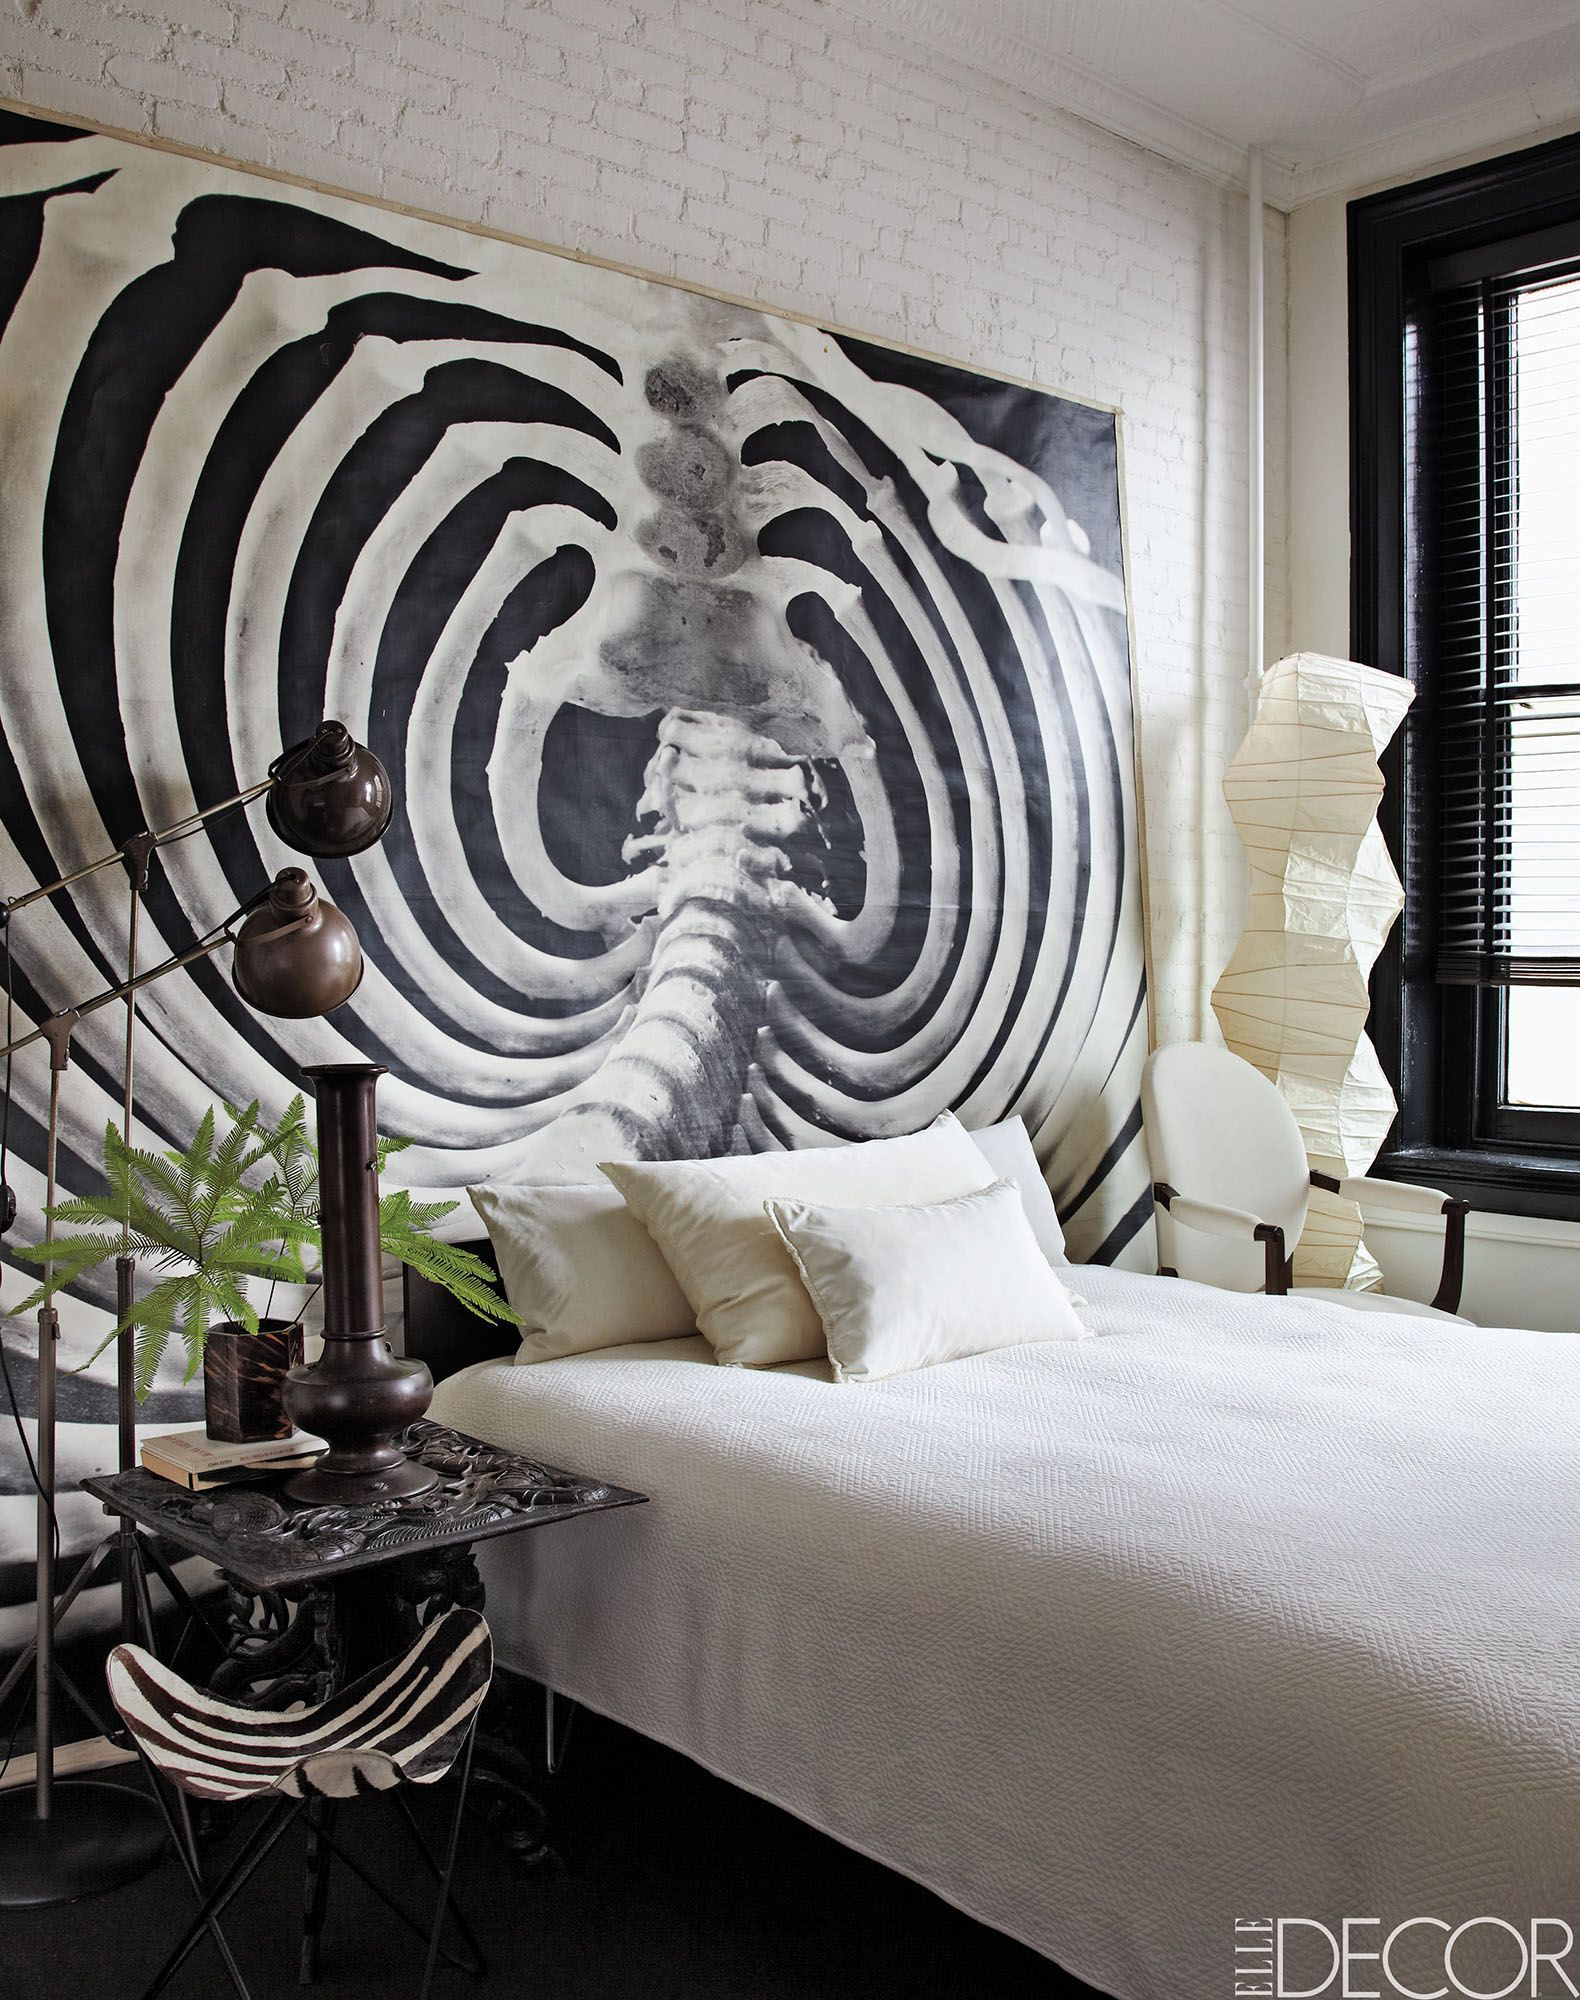 Large scale art as headboard eclectic bedroom decor standing paper